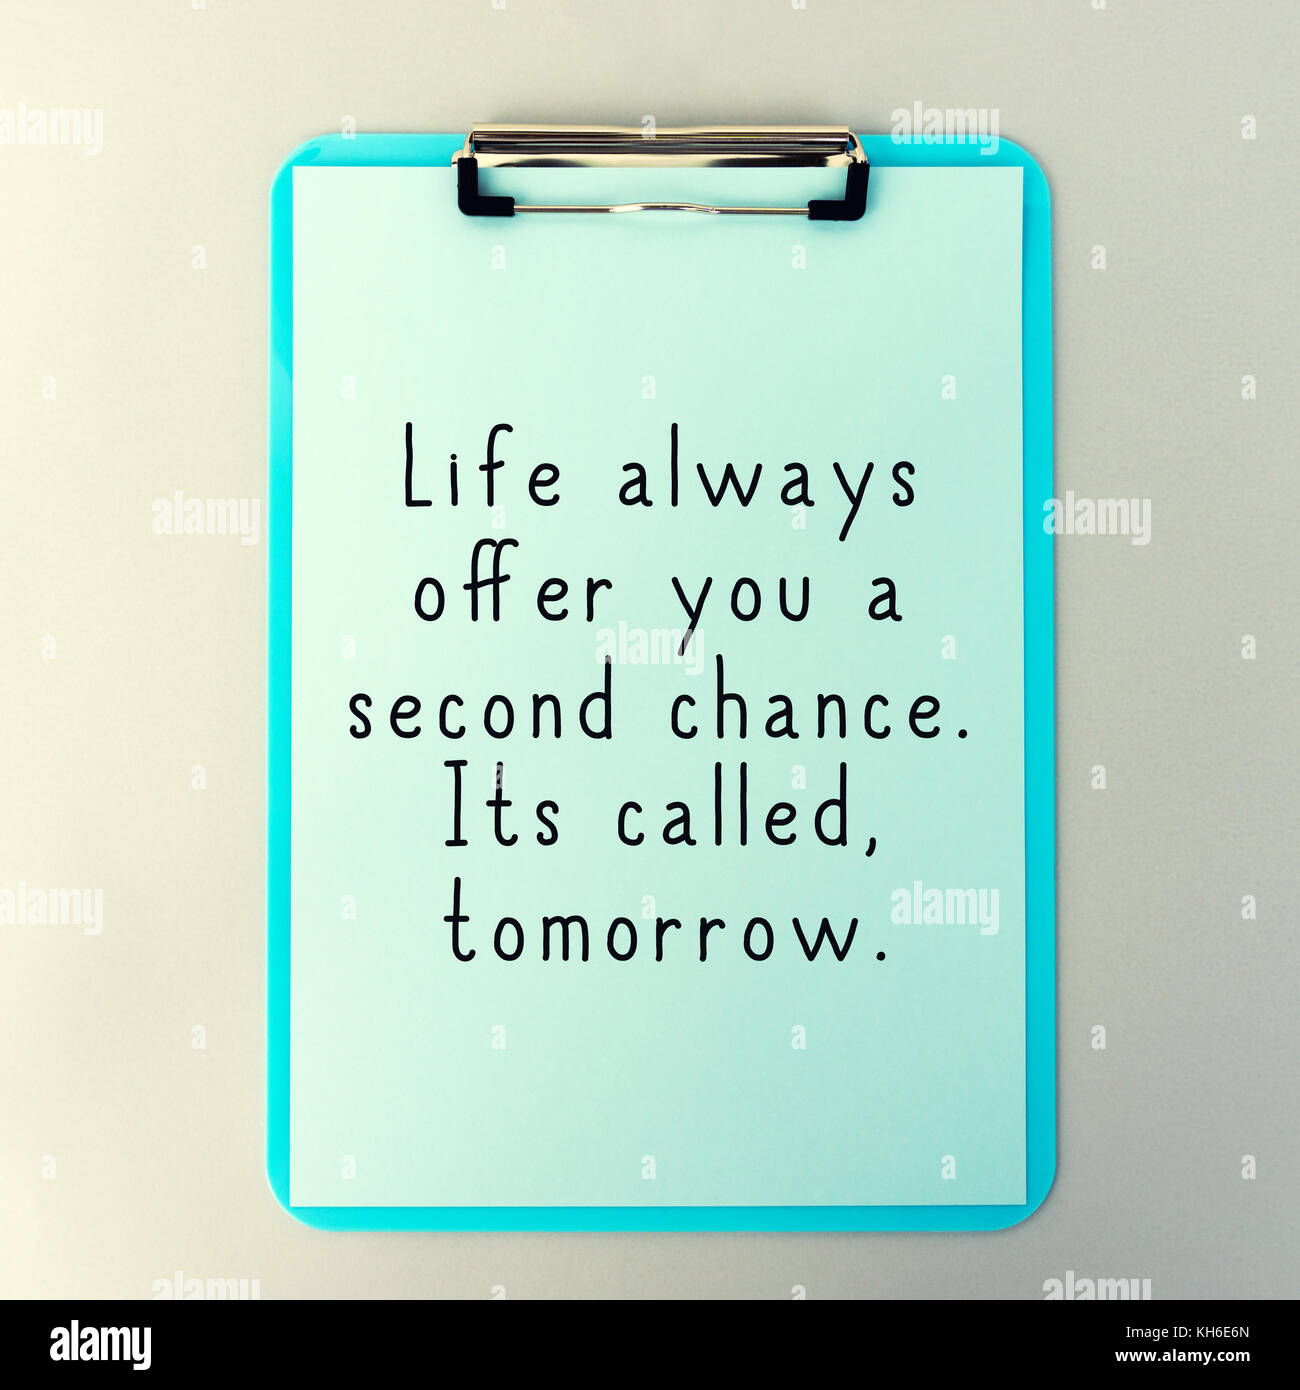 Life Inspirational And Motivational Quotes - Life Always Offer You A Second Chance. Its Called Tomorrow. - Stock Image